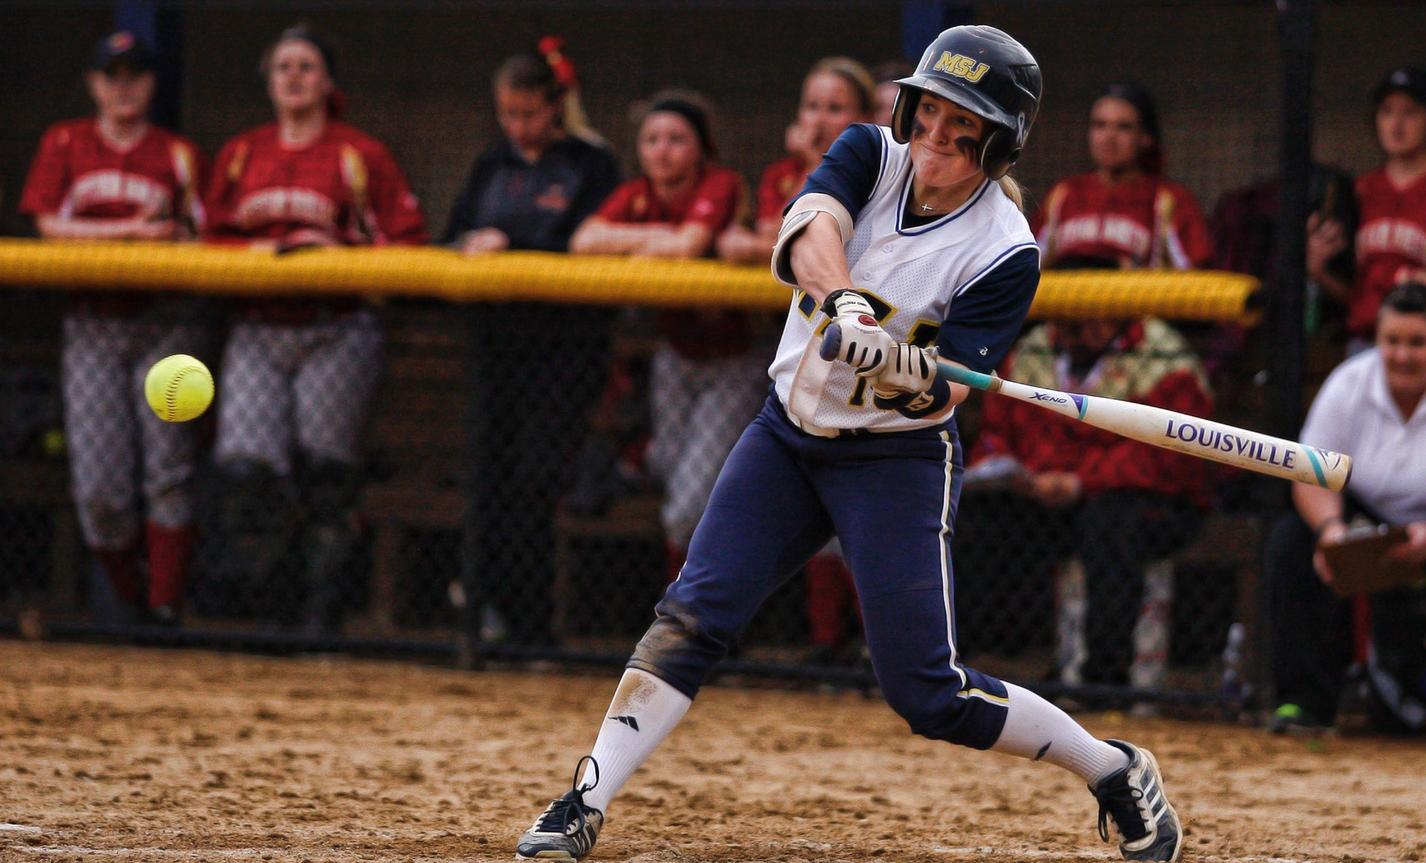 Lions split double header with Otterbein